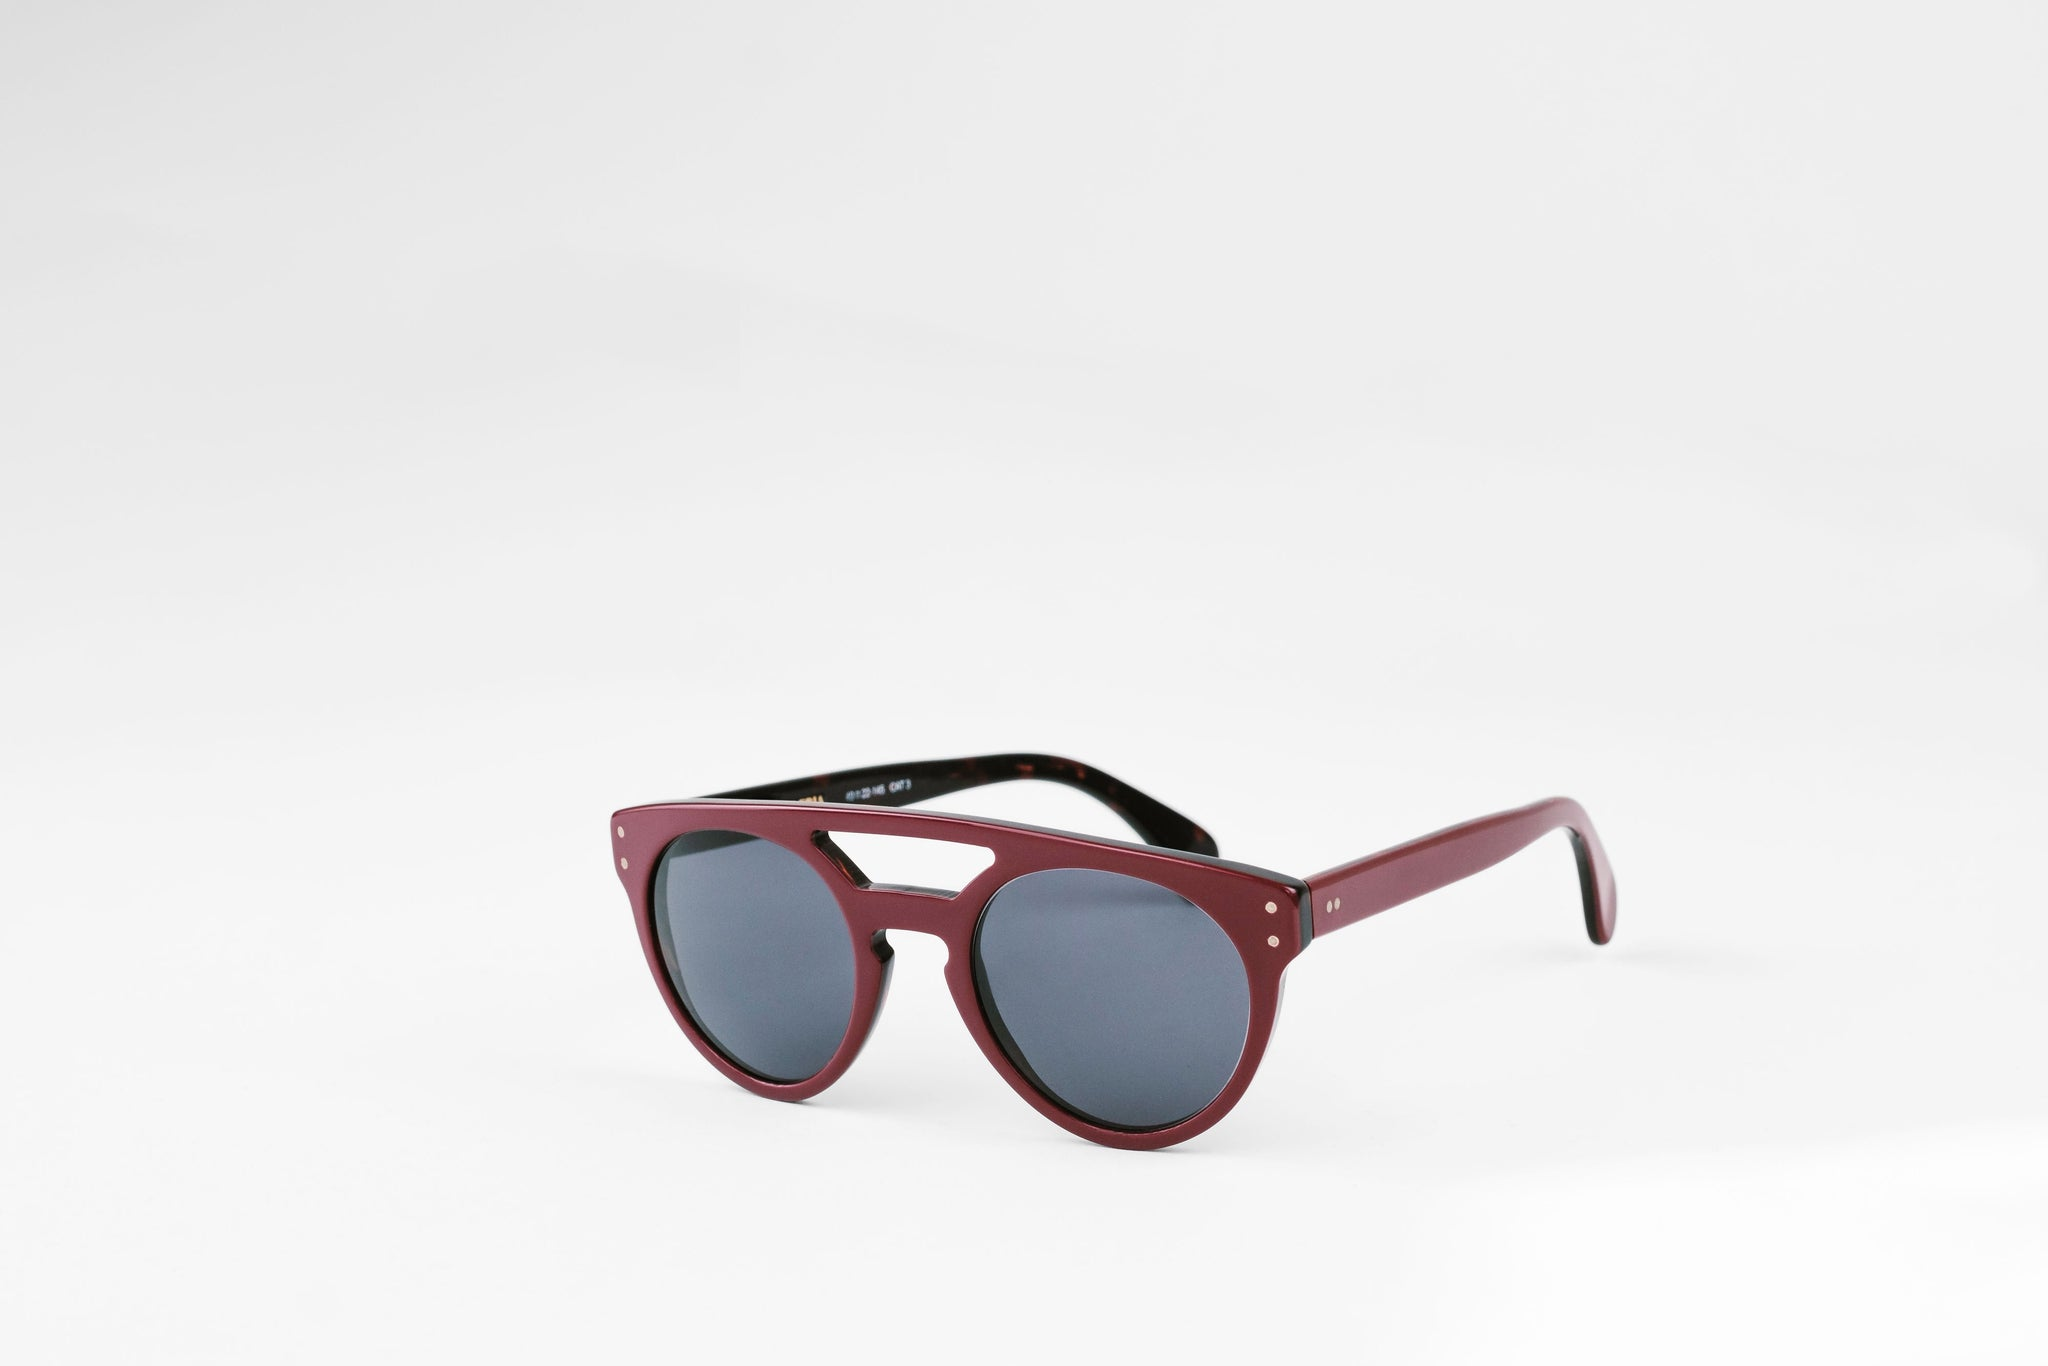 Avatar Limited Edition Sunglasses - Lesetta